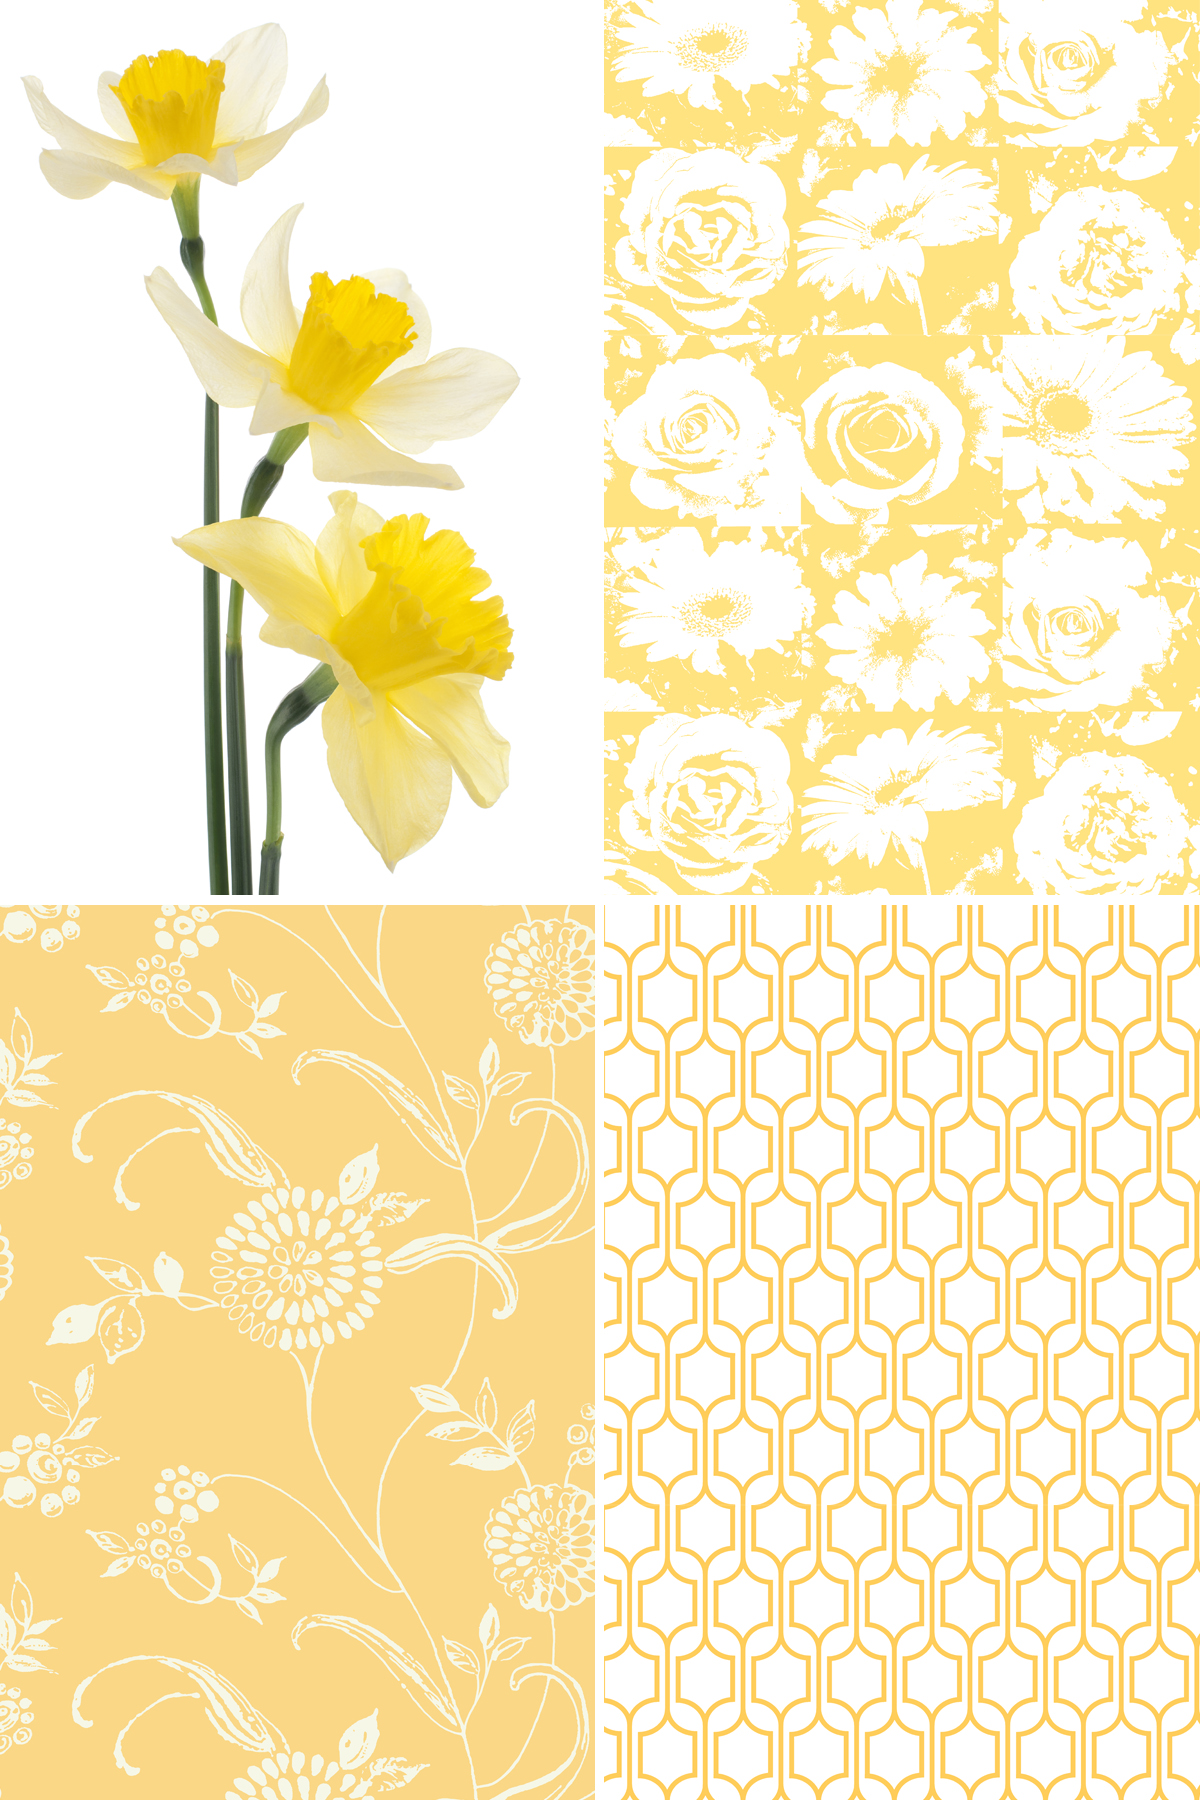 Trellis wallpaper KB8649 from Yorks Bistro 750 collection 1200x1800